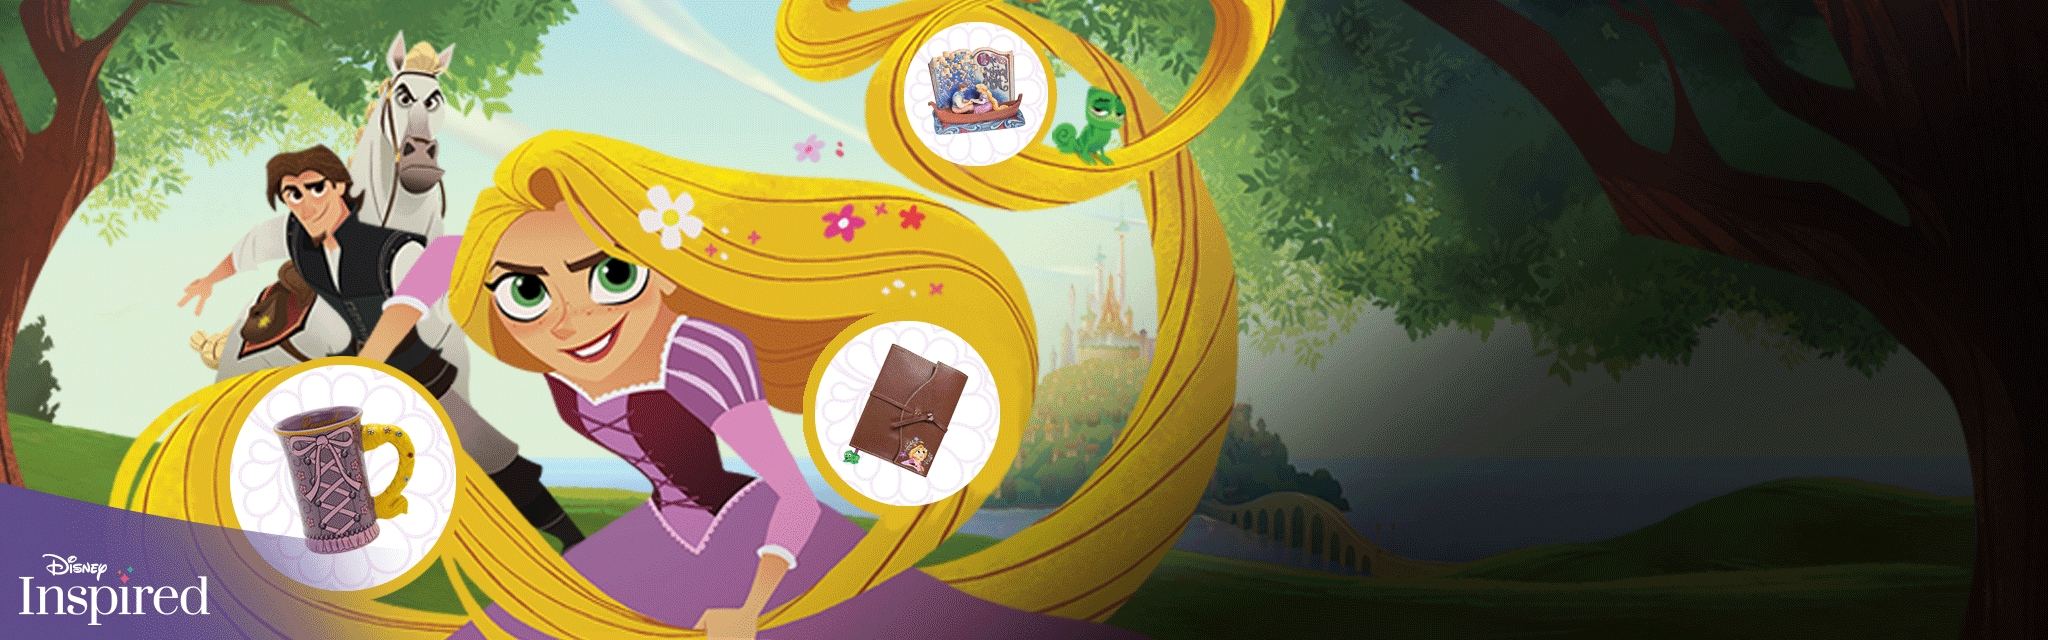 Tangled Wish List Disney Inspired Hero